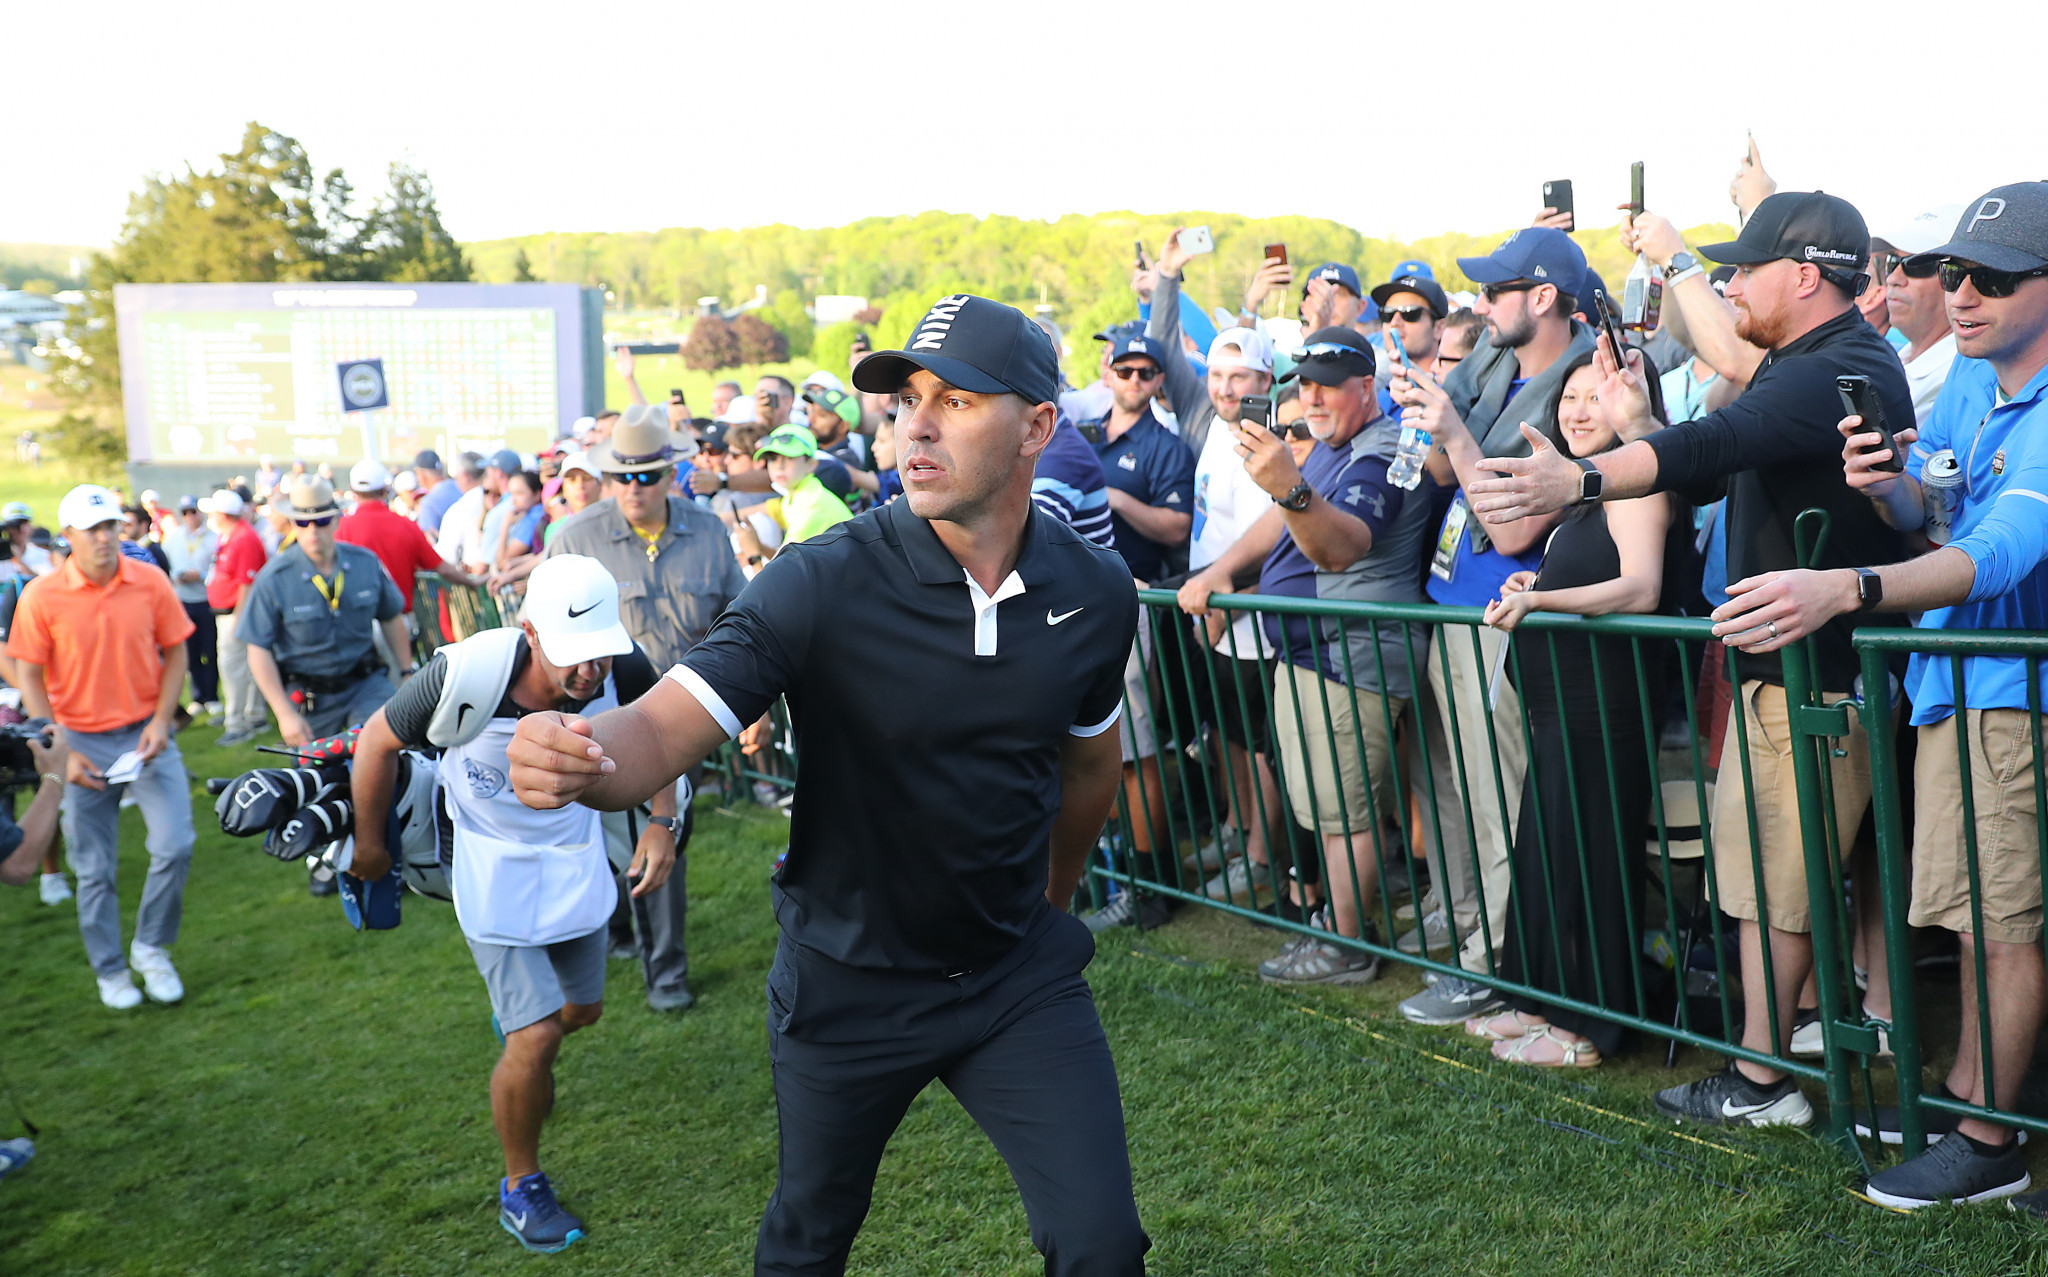 Koepka closes in on US PGA Championship title after maintaining huge lead